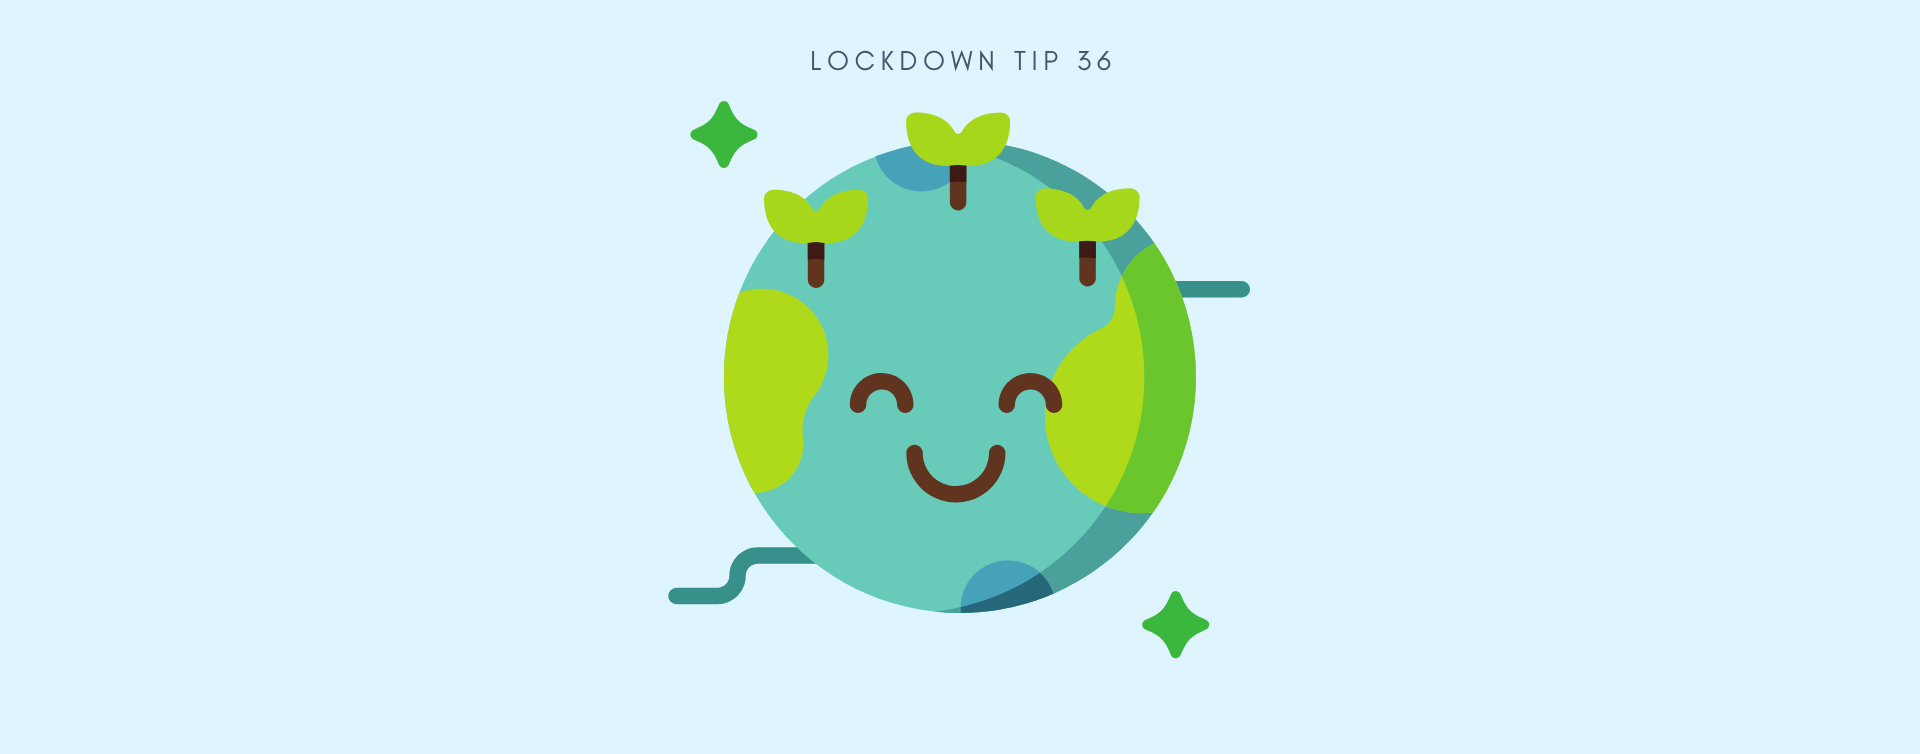 MCSA Lockdown Tip 36